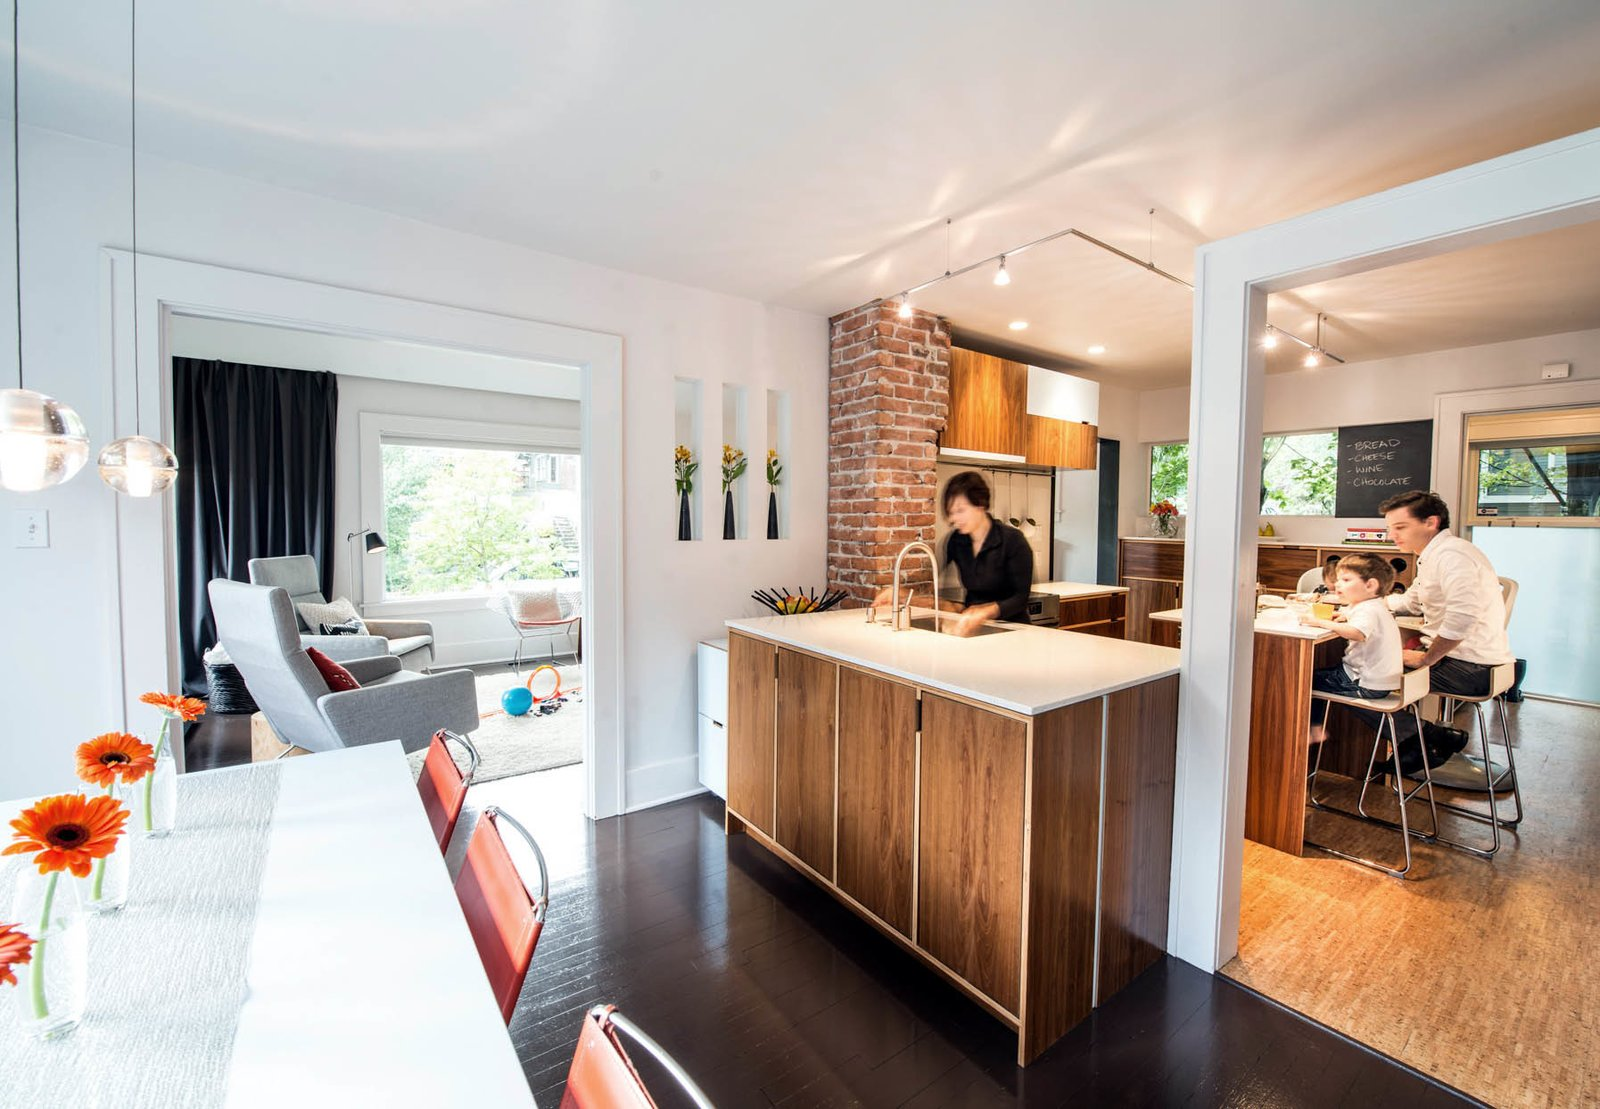 Architects Sara and Jeremy Imhoff and their son Jonah use the renovated kitchen in their 1918 bungalow in Seattle's Fremont neighborhood.  Photo 1 of 7 in Transformative House Renovation in Seattle